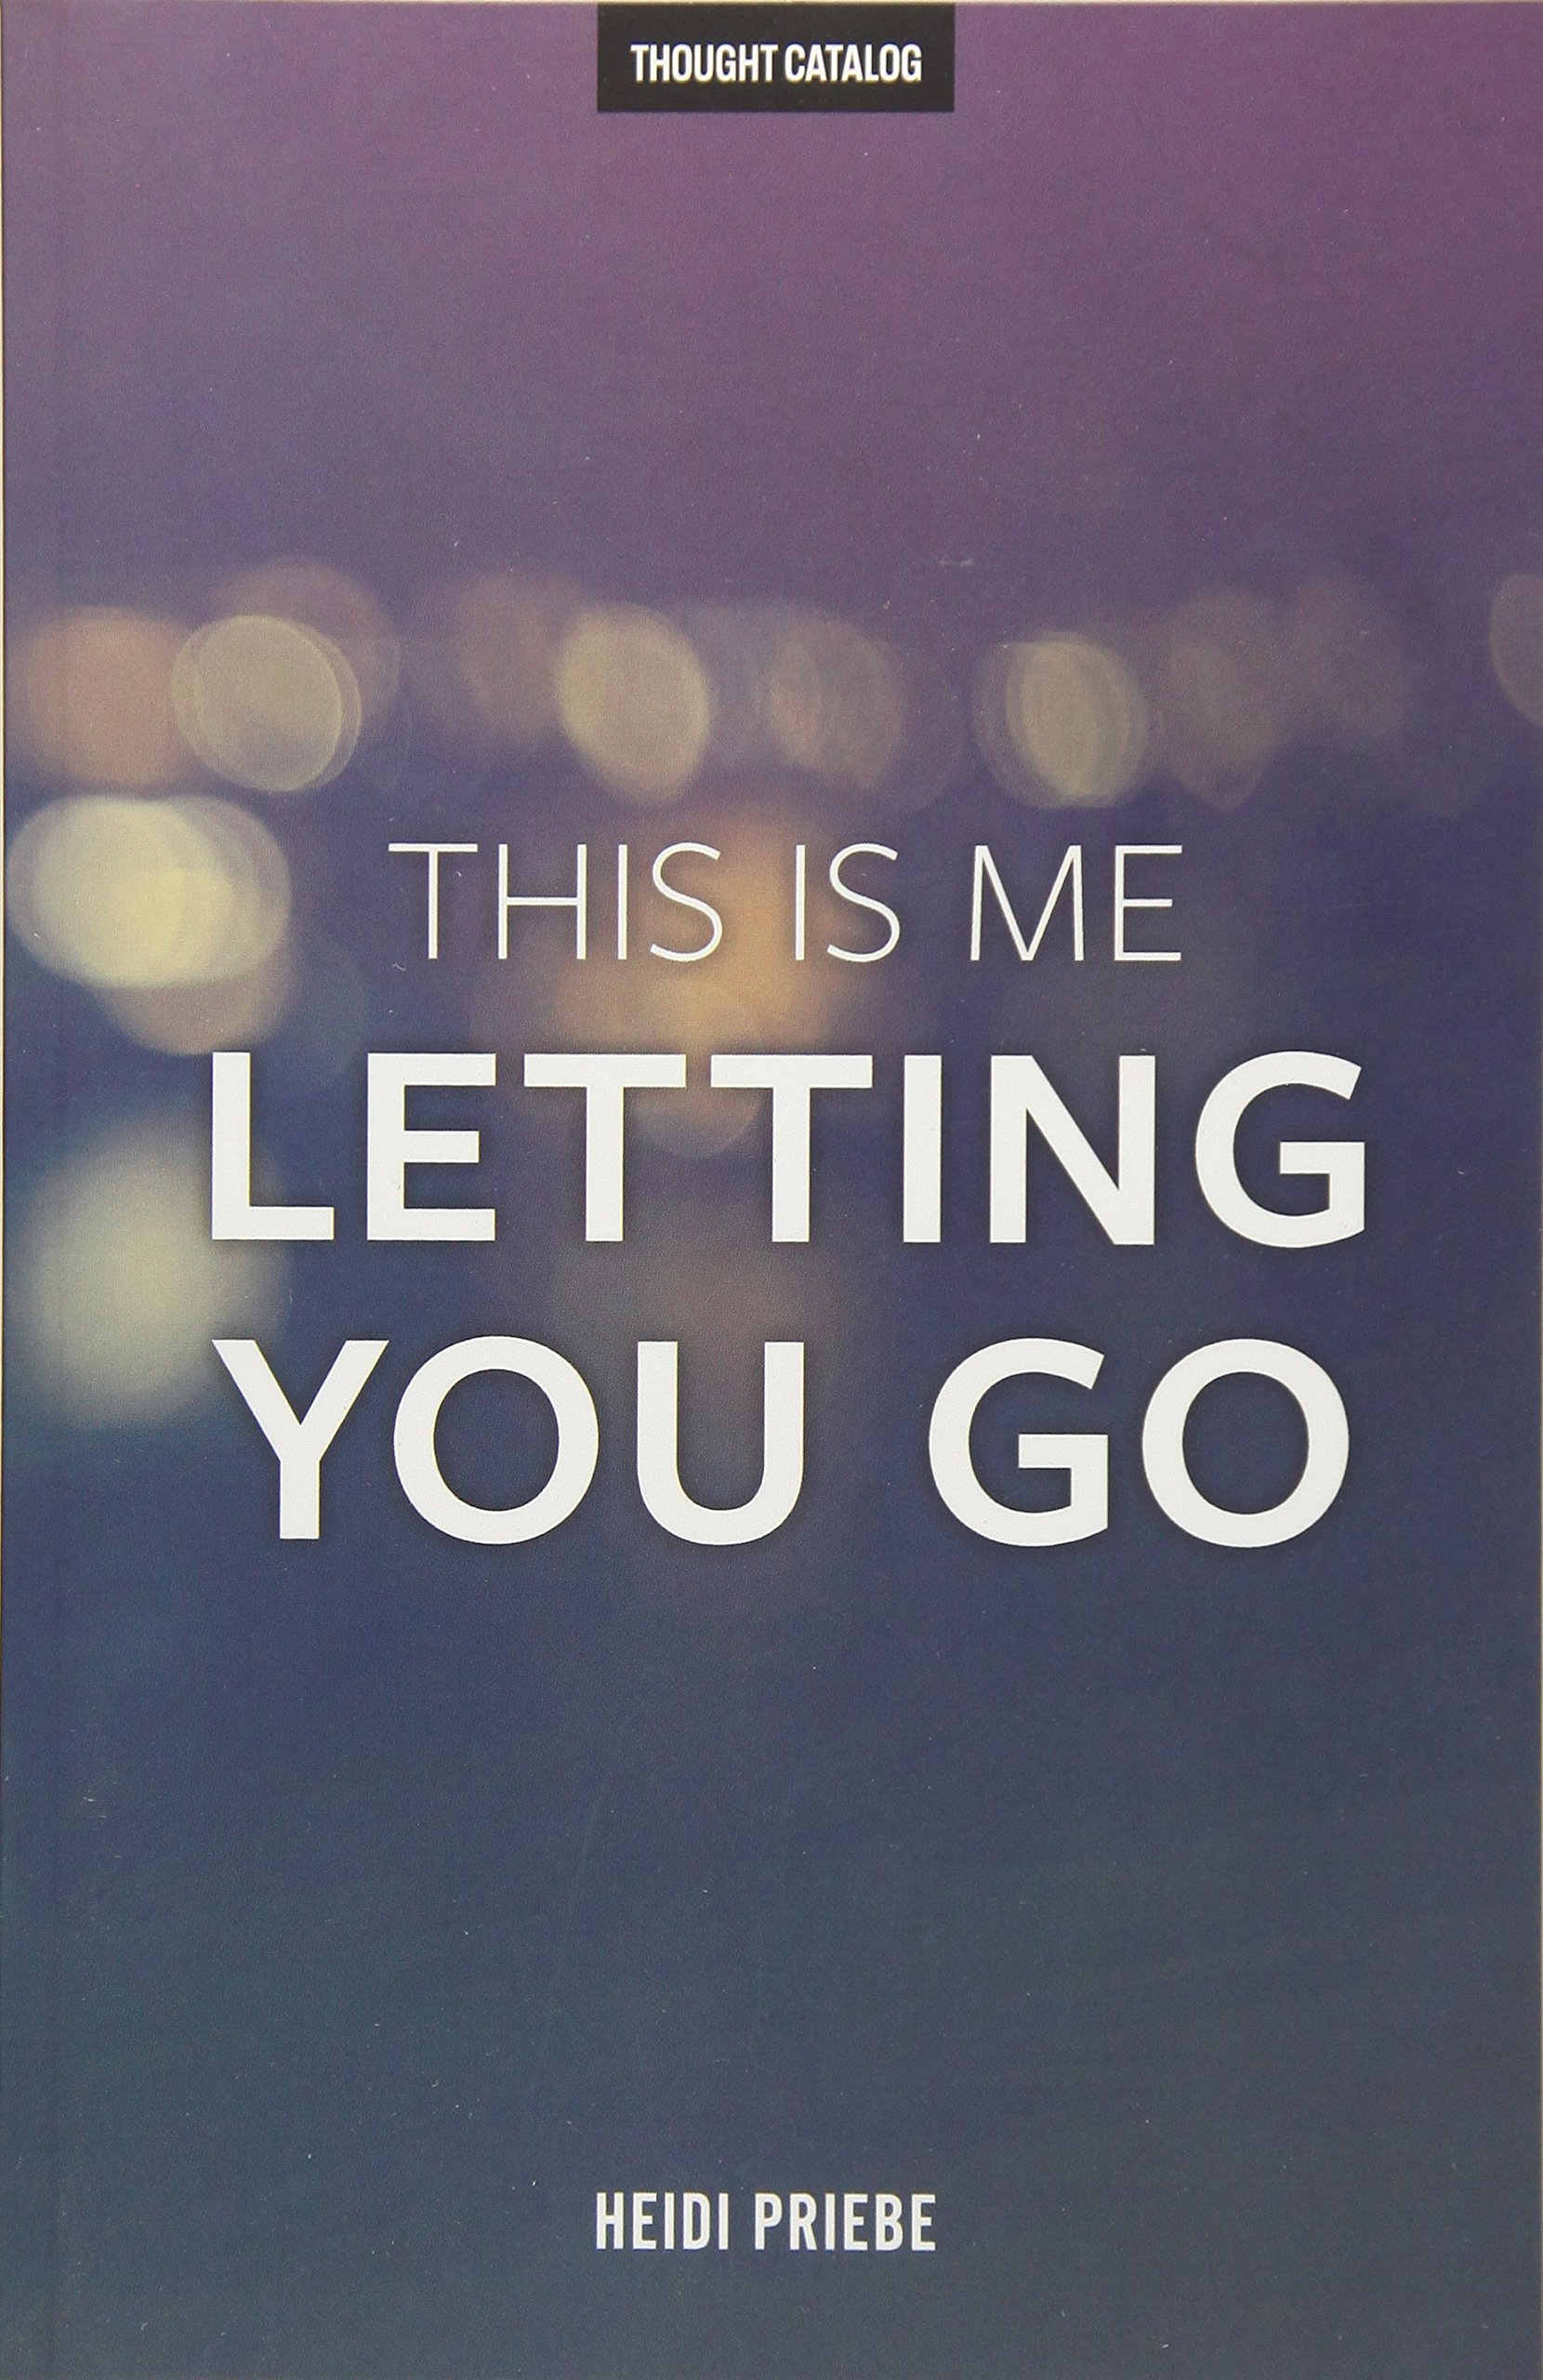 This Is Me Letting You Go: Amazon.es: Heidi Priebe: Libros en idiomas extranjeros